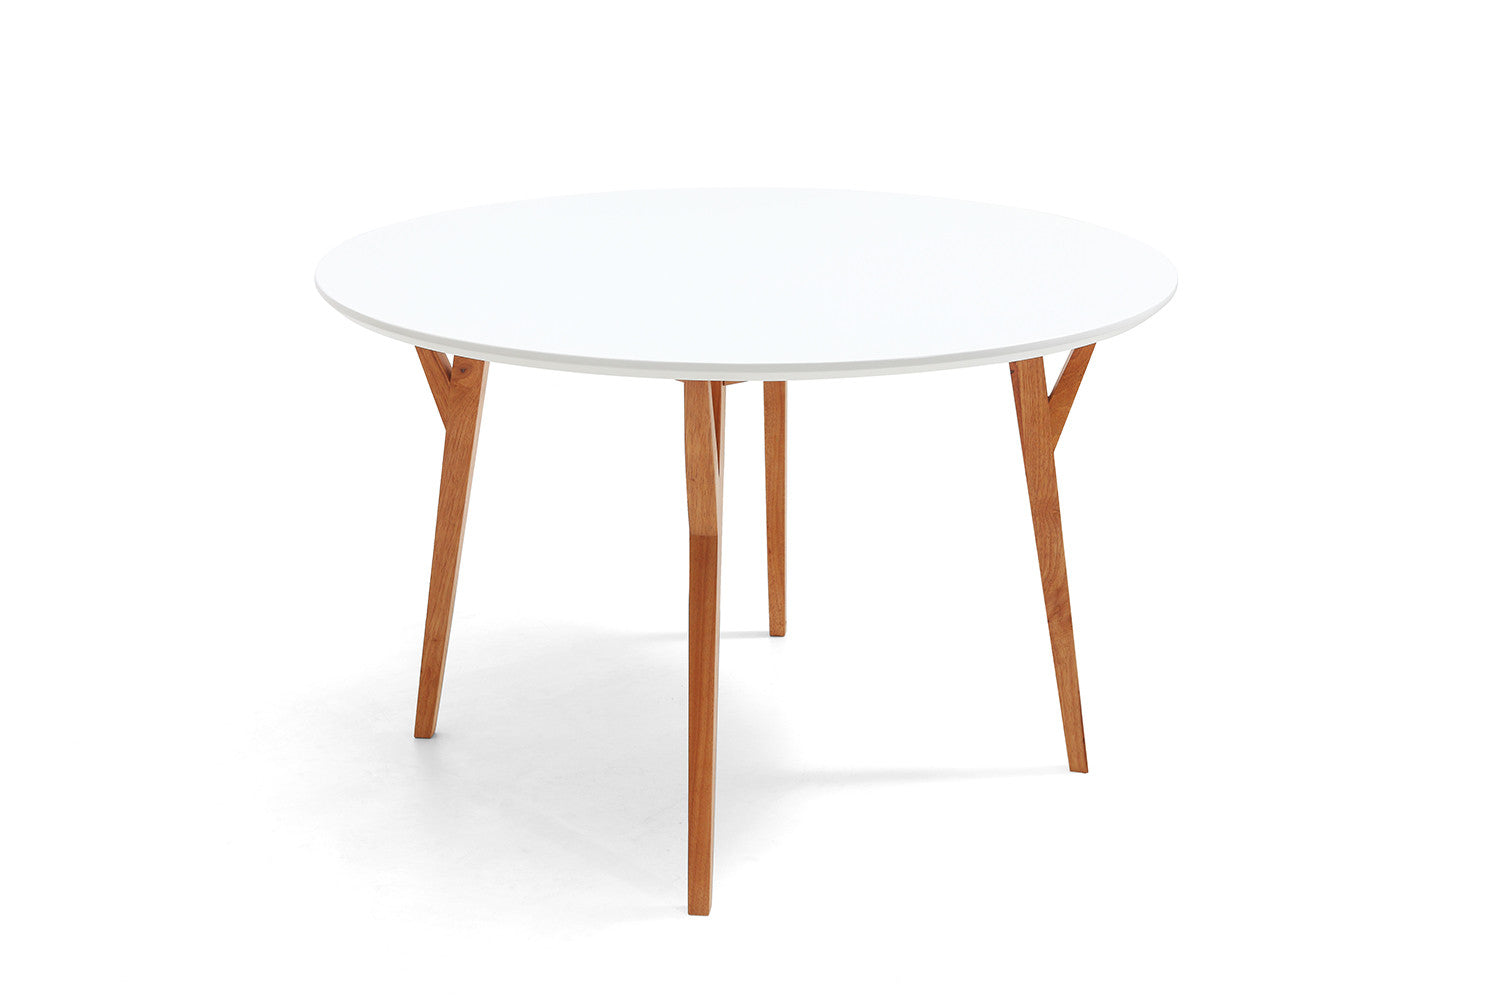 Table de salle manger ronde design scandinave moesa for Table design blanche